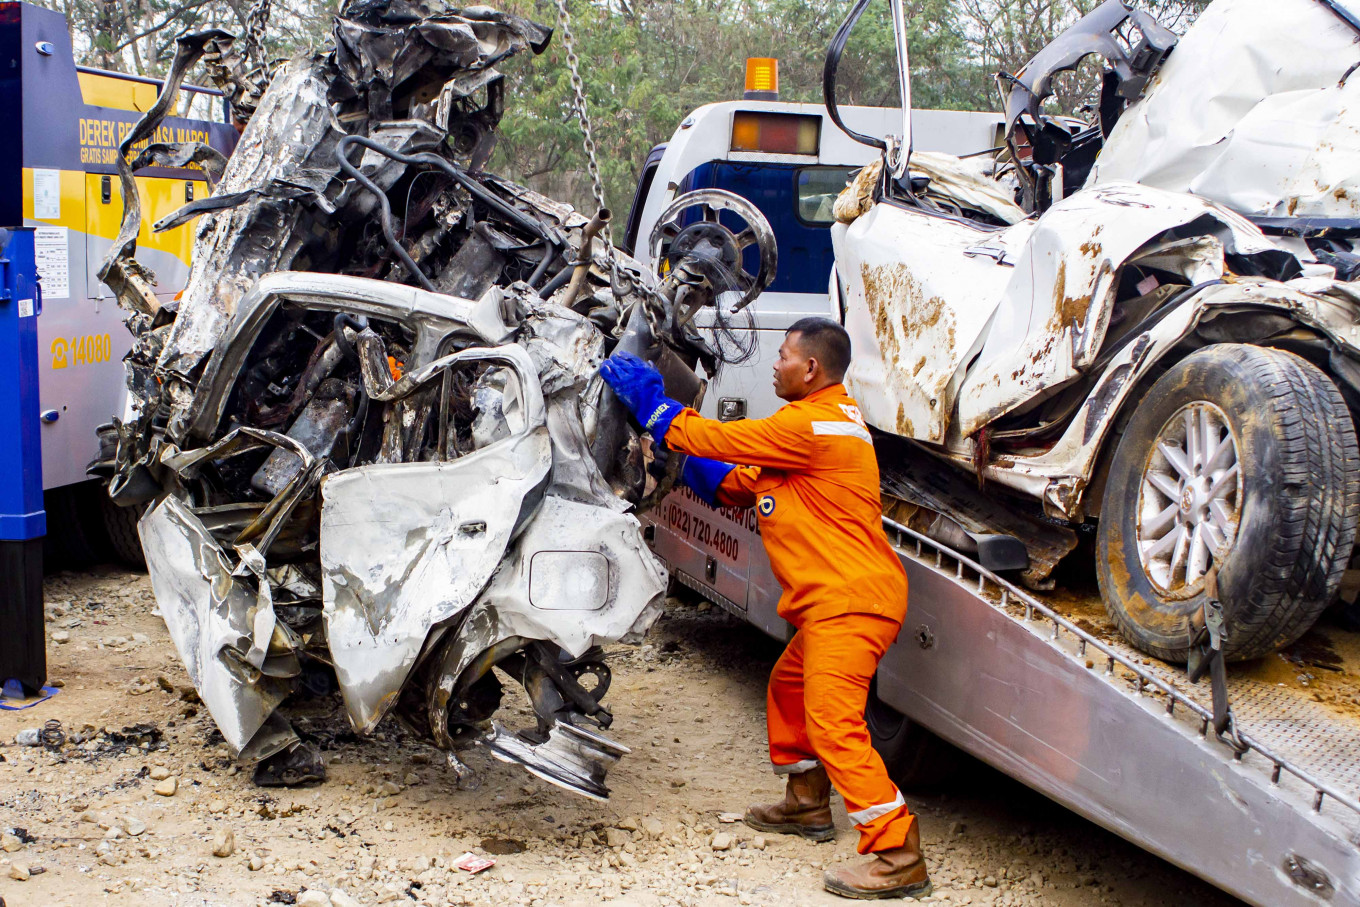 23 die in traffic accidents during Christmas holiday exodus